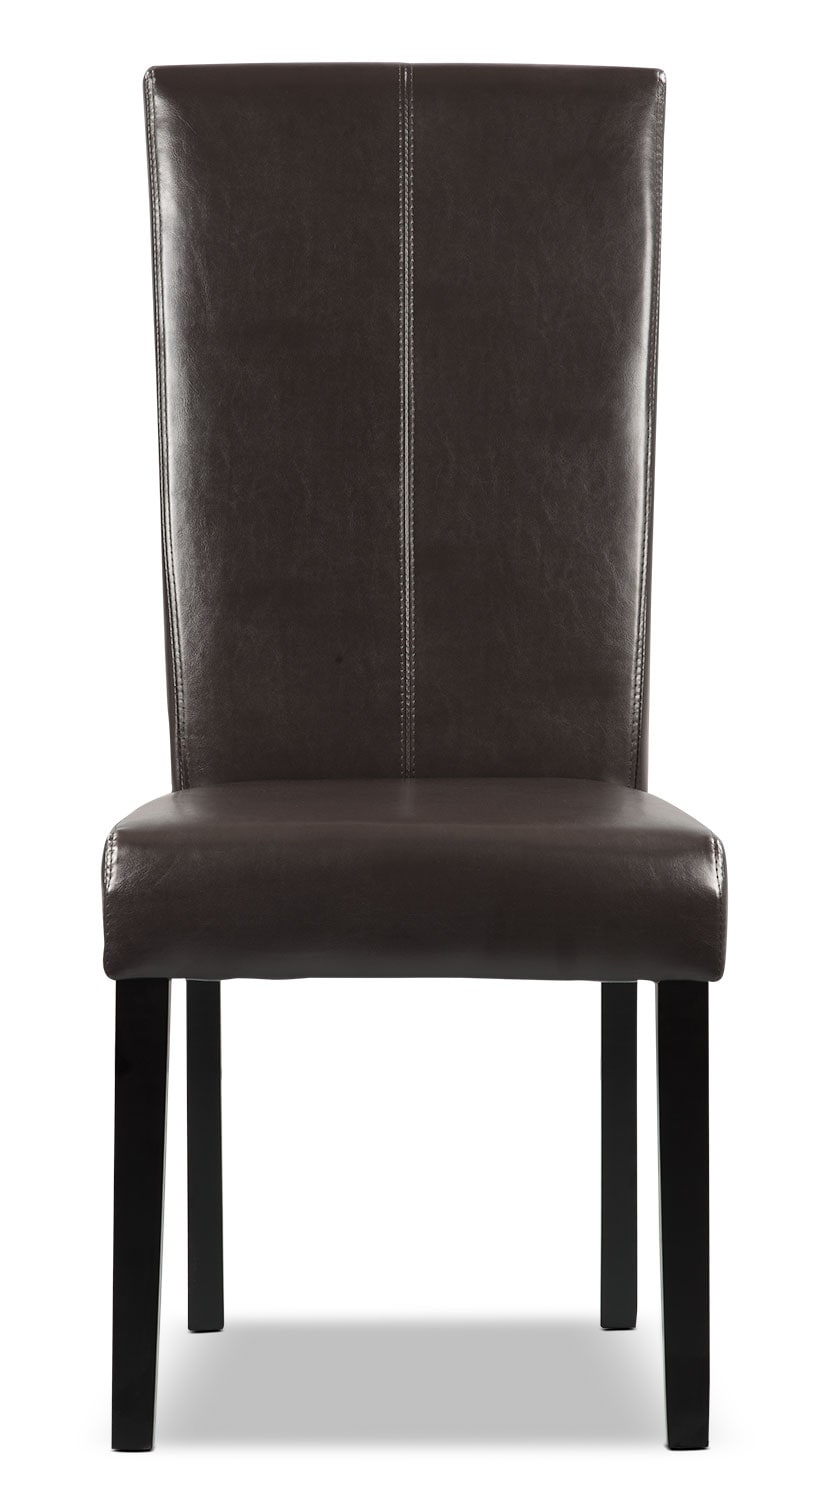 Brown faux leather dining chair united furniture warehouse for Brown leather dining chairs